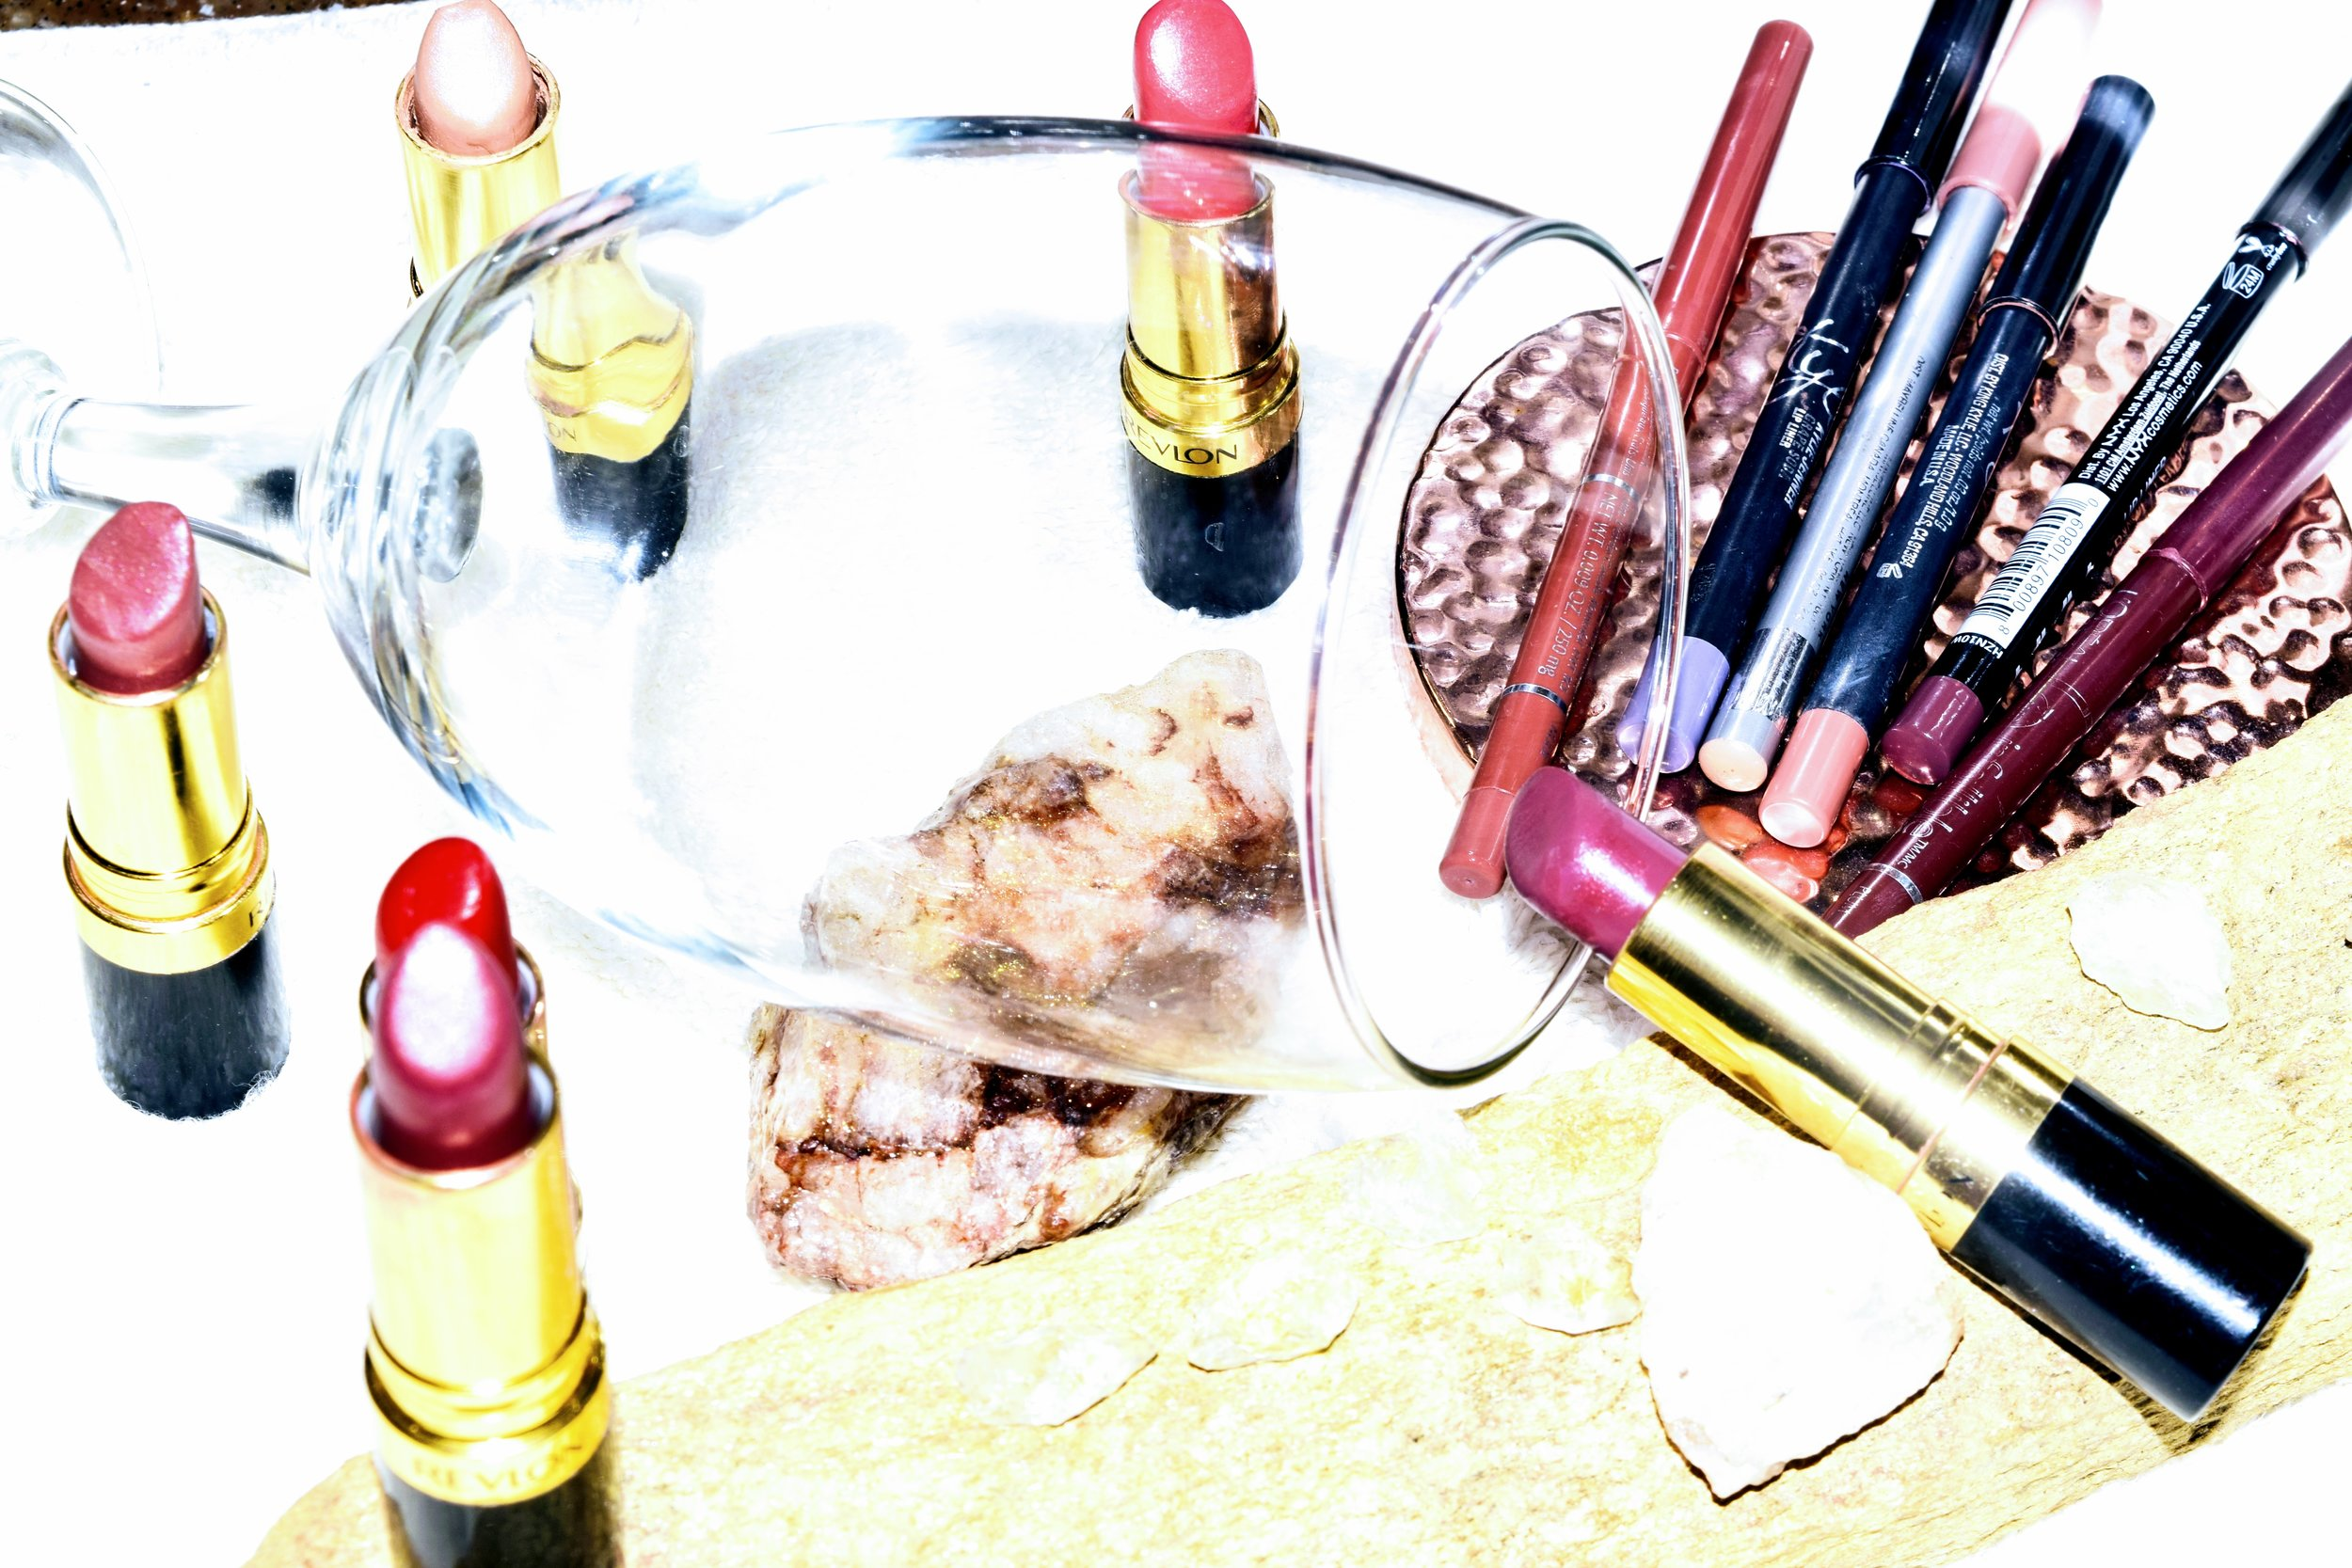 Drugstore Beauty - Drugstore finds like these lipsticks are perfect for mixing with other colors, or even applying a liquid metal